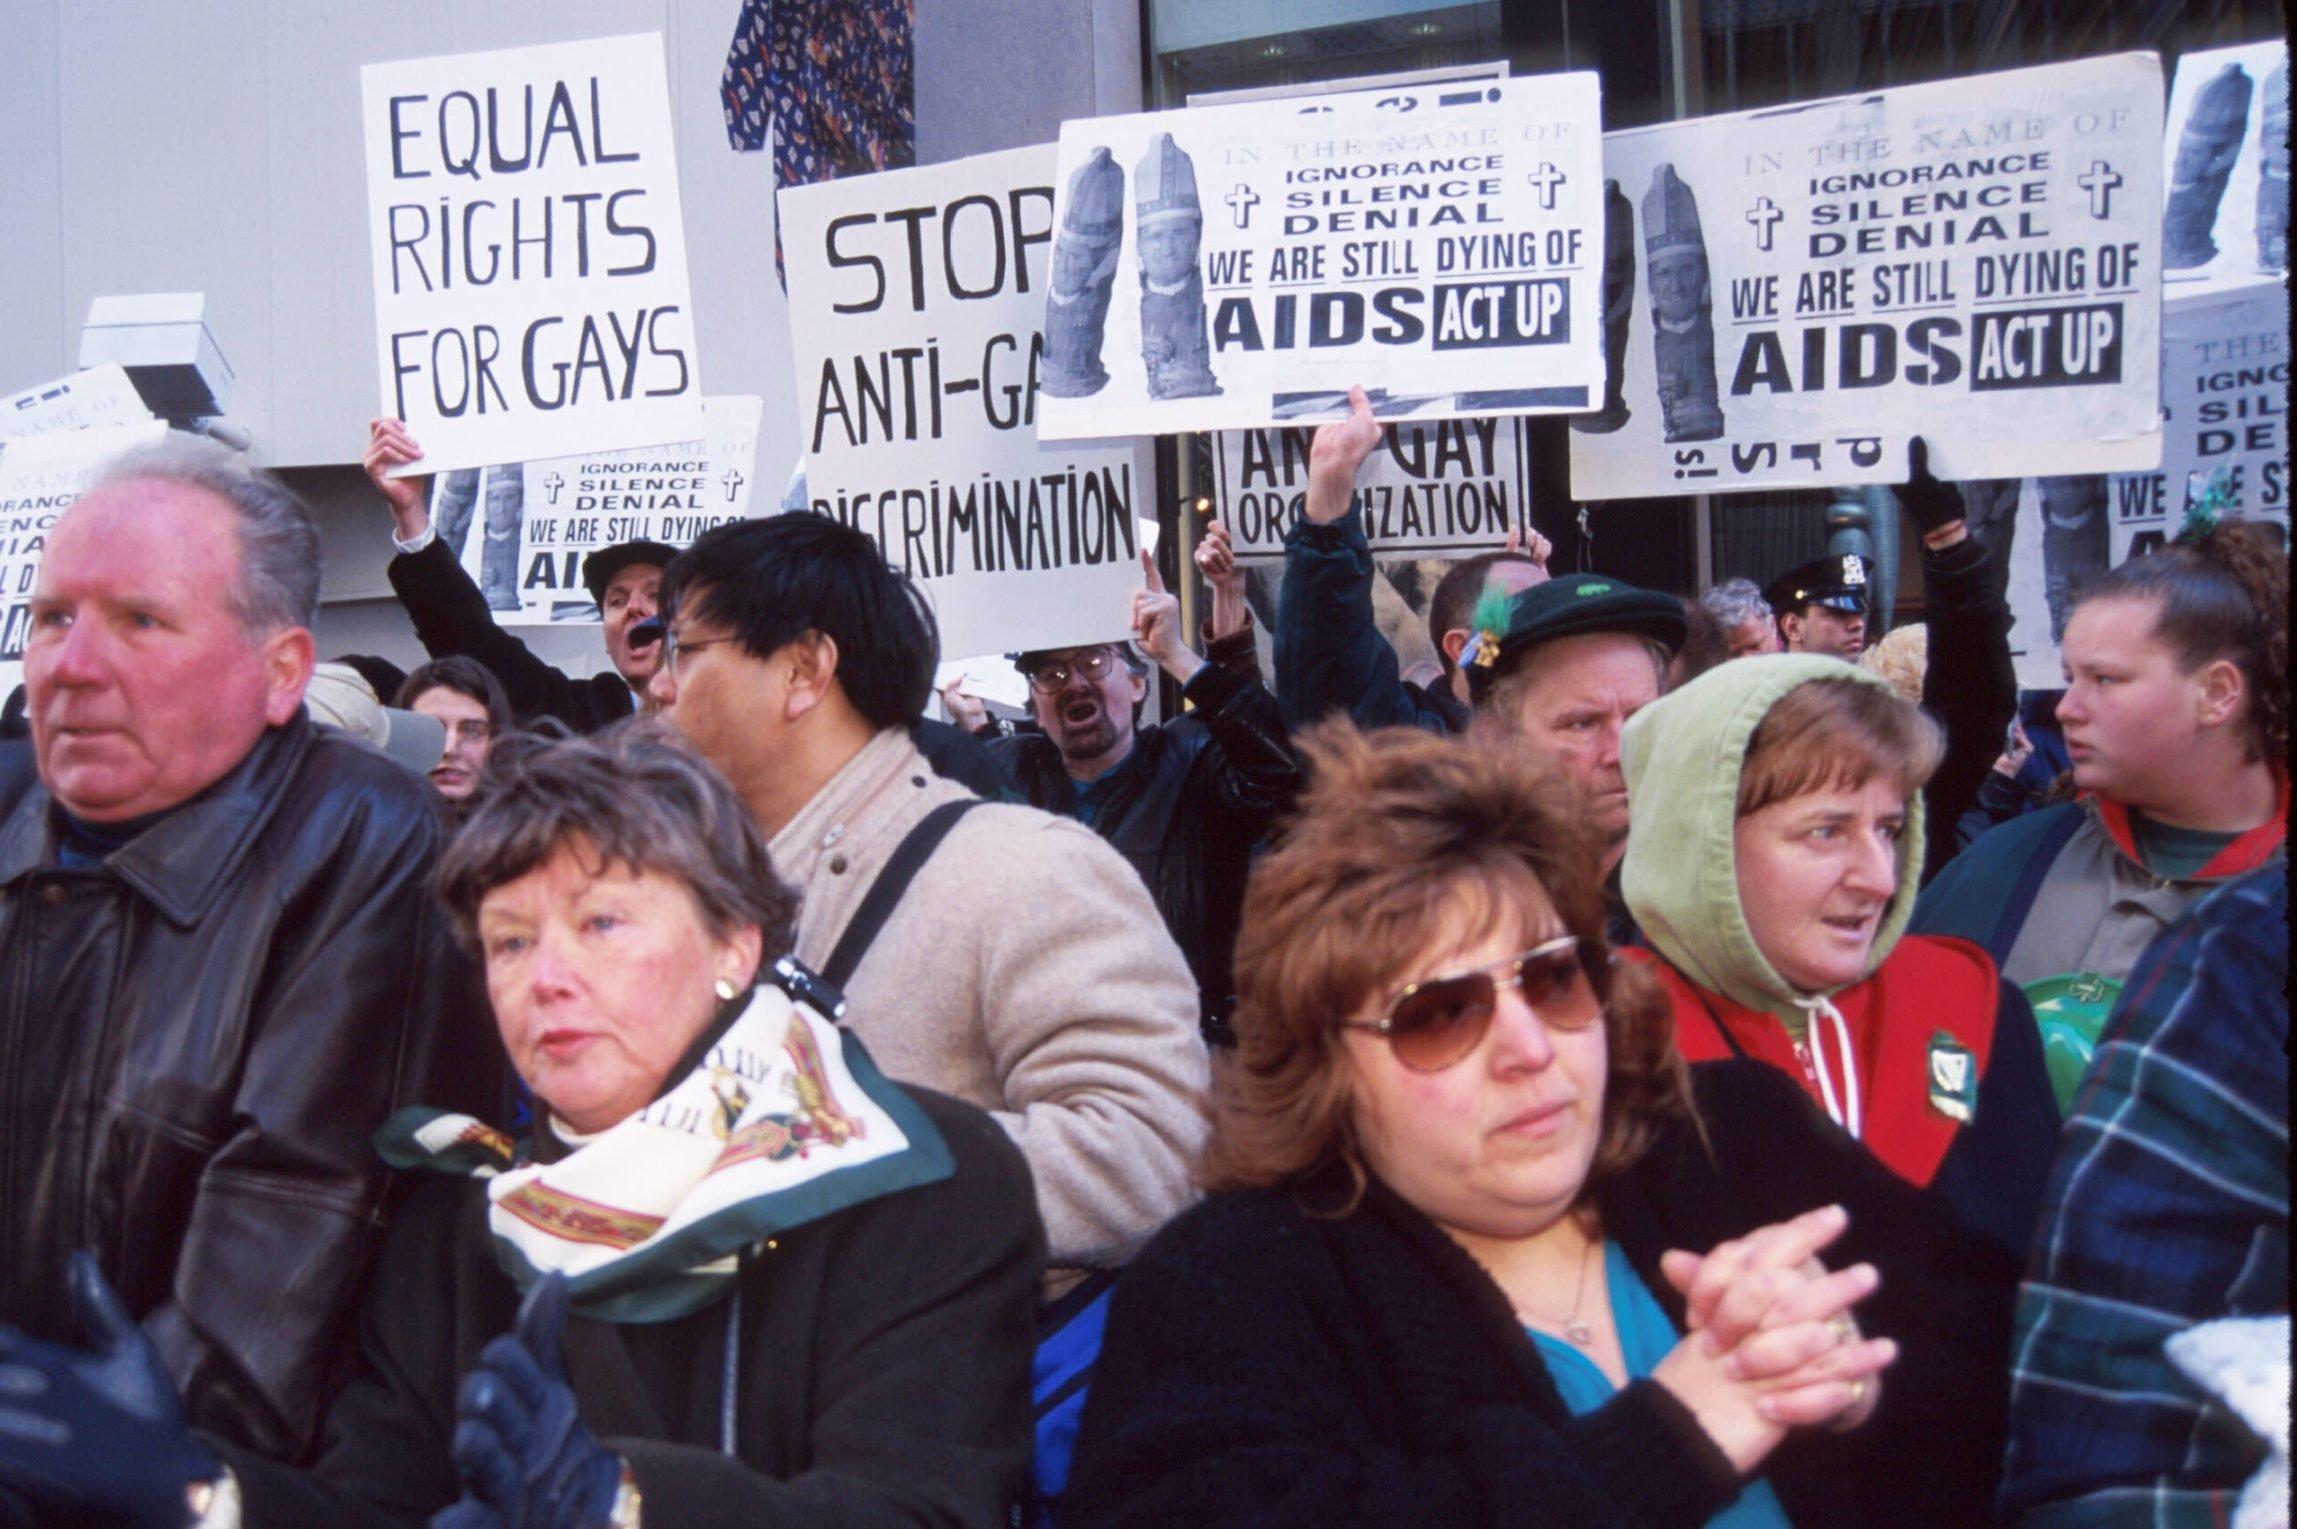 Protesters At St Patrick's Day Parade